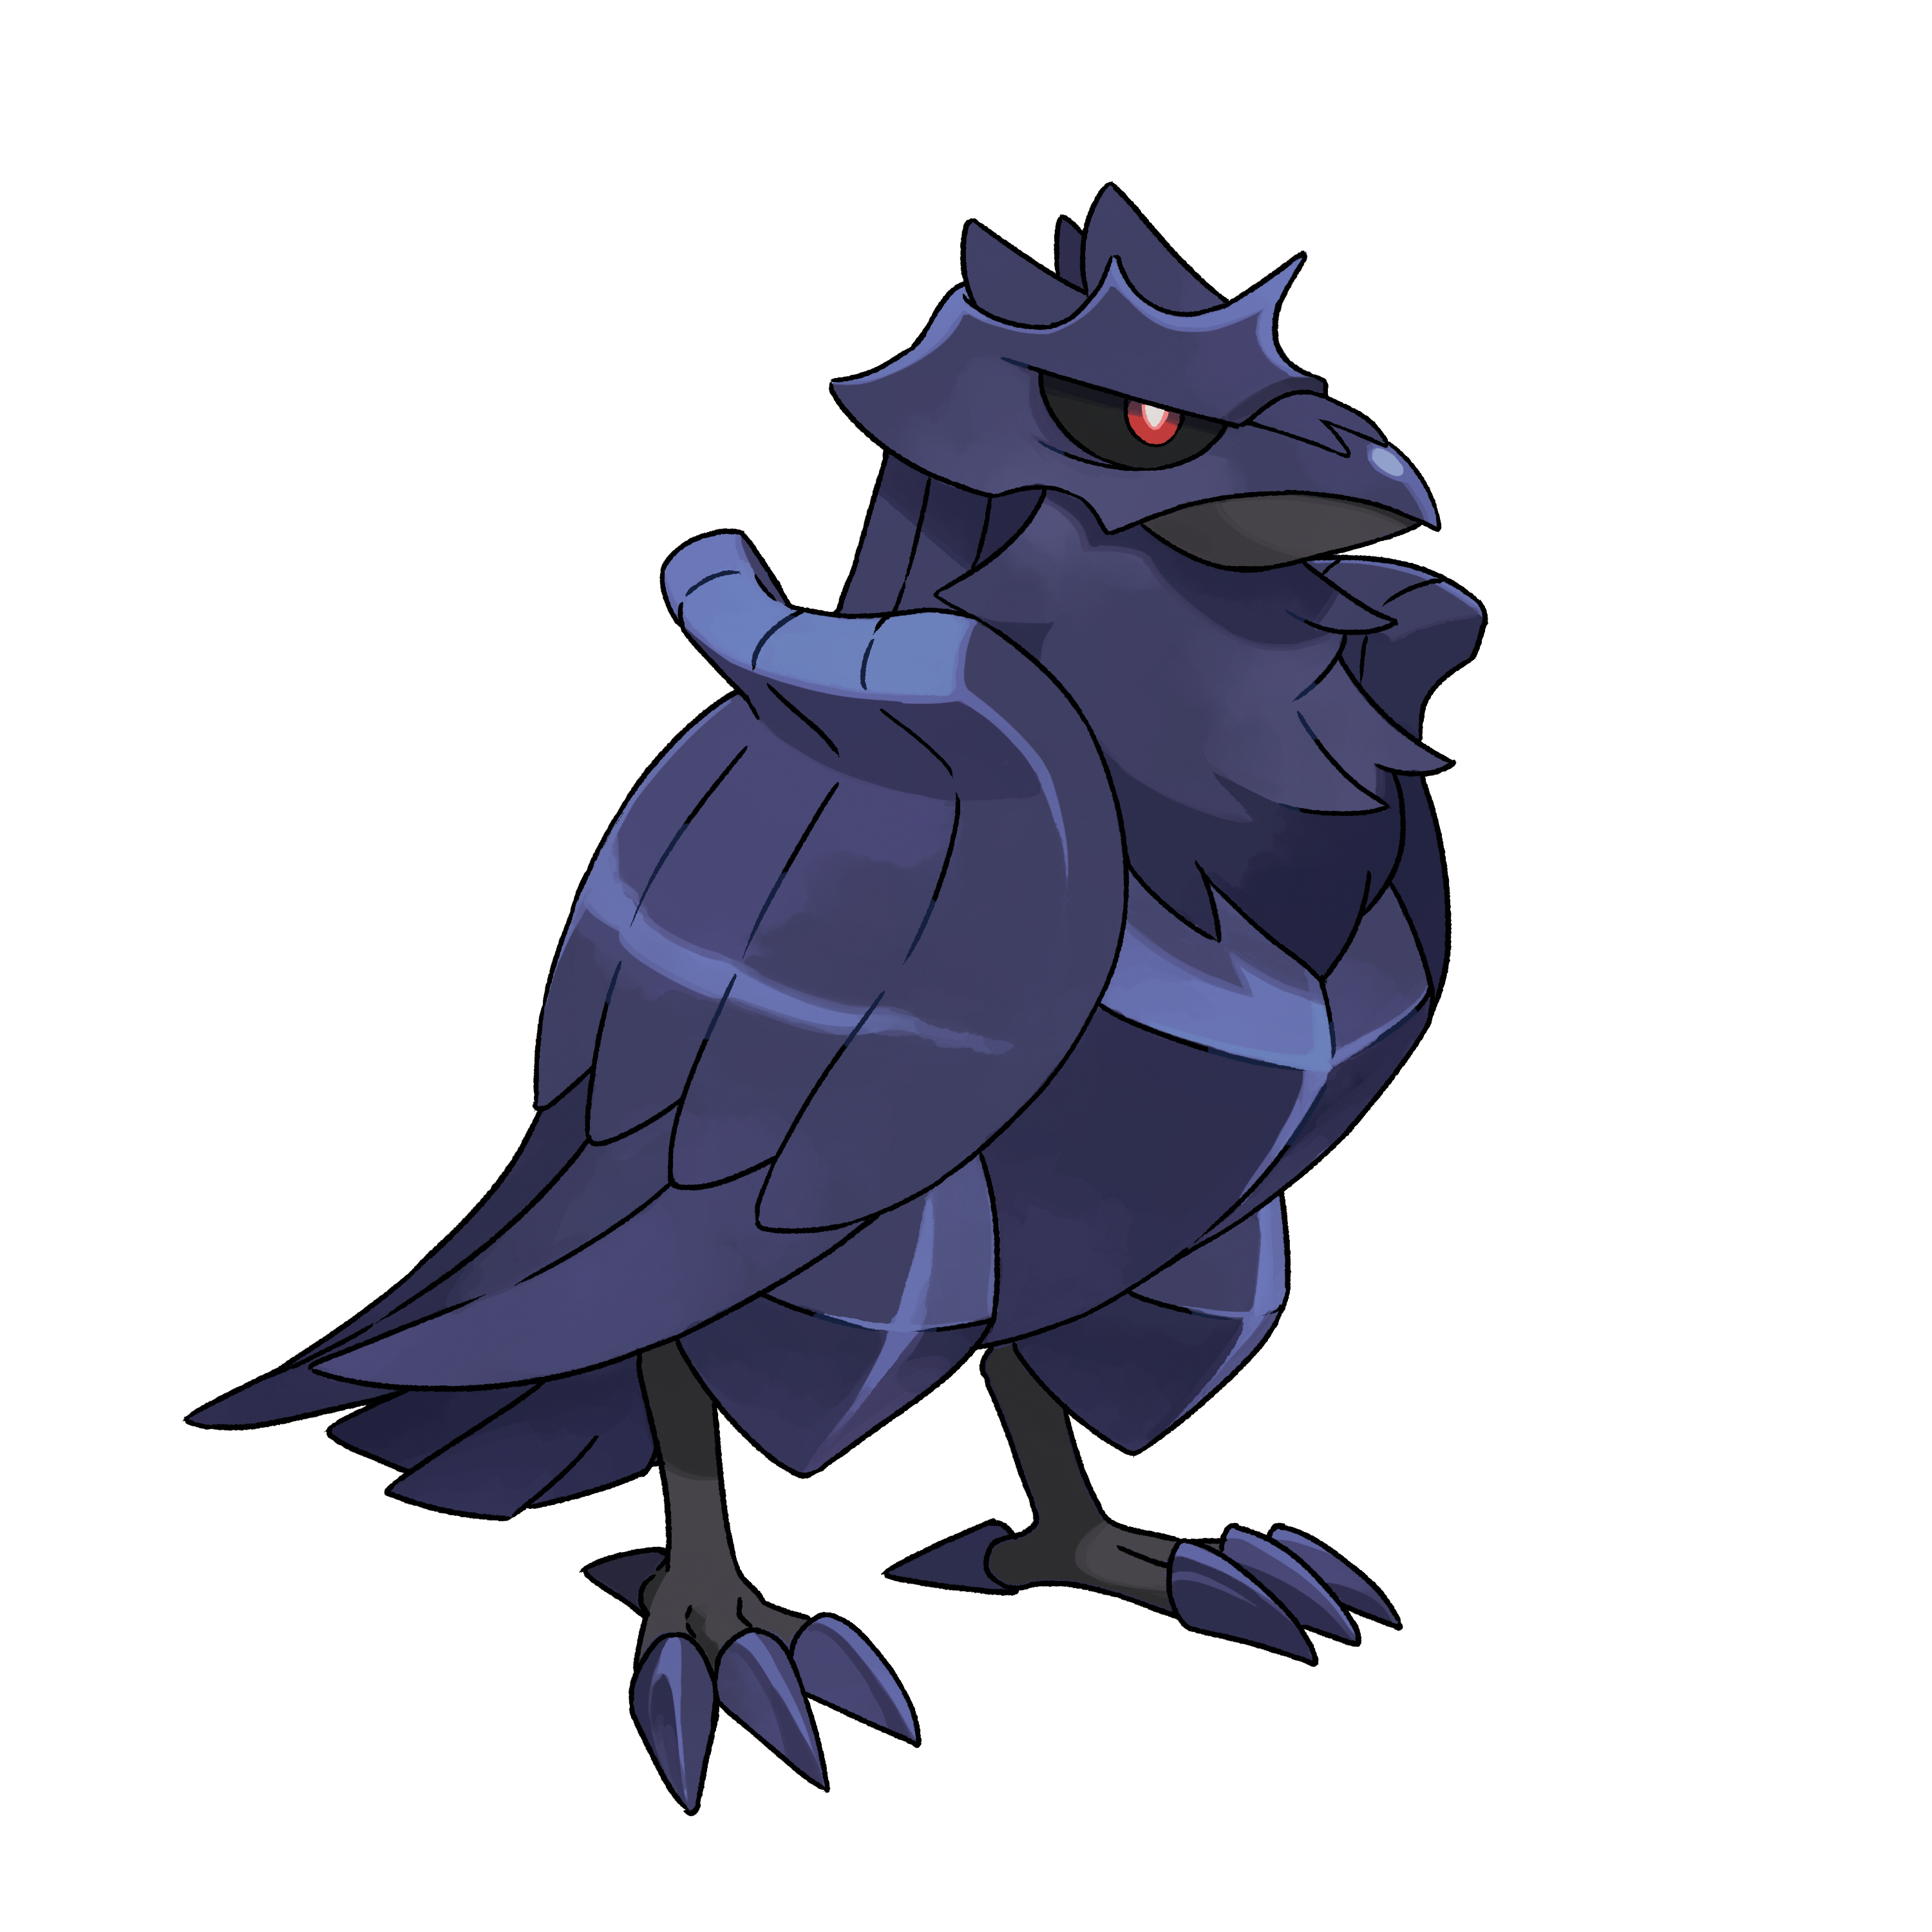 Corviknight_-_Pokemon_Sword_and_Shield.png